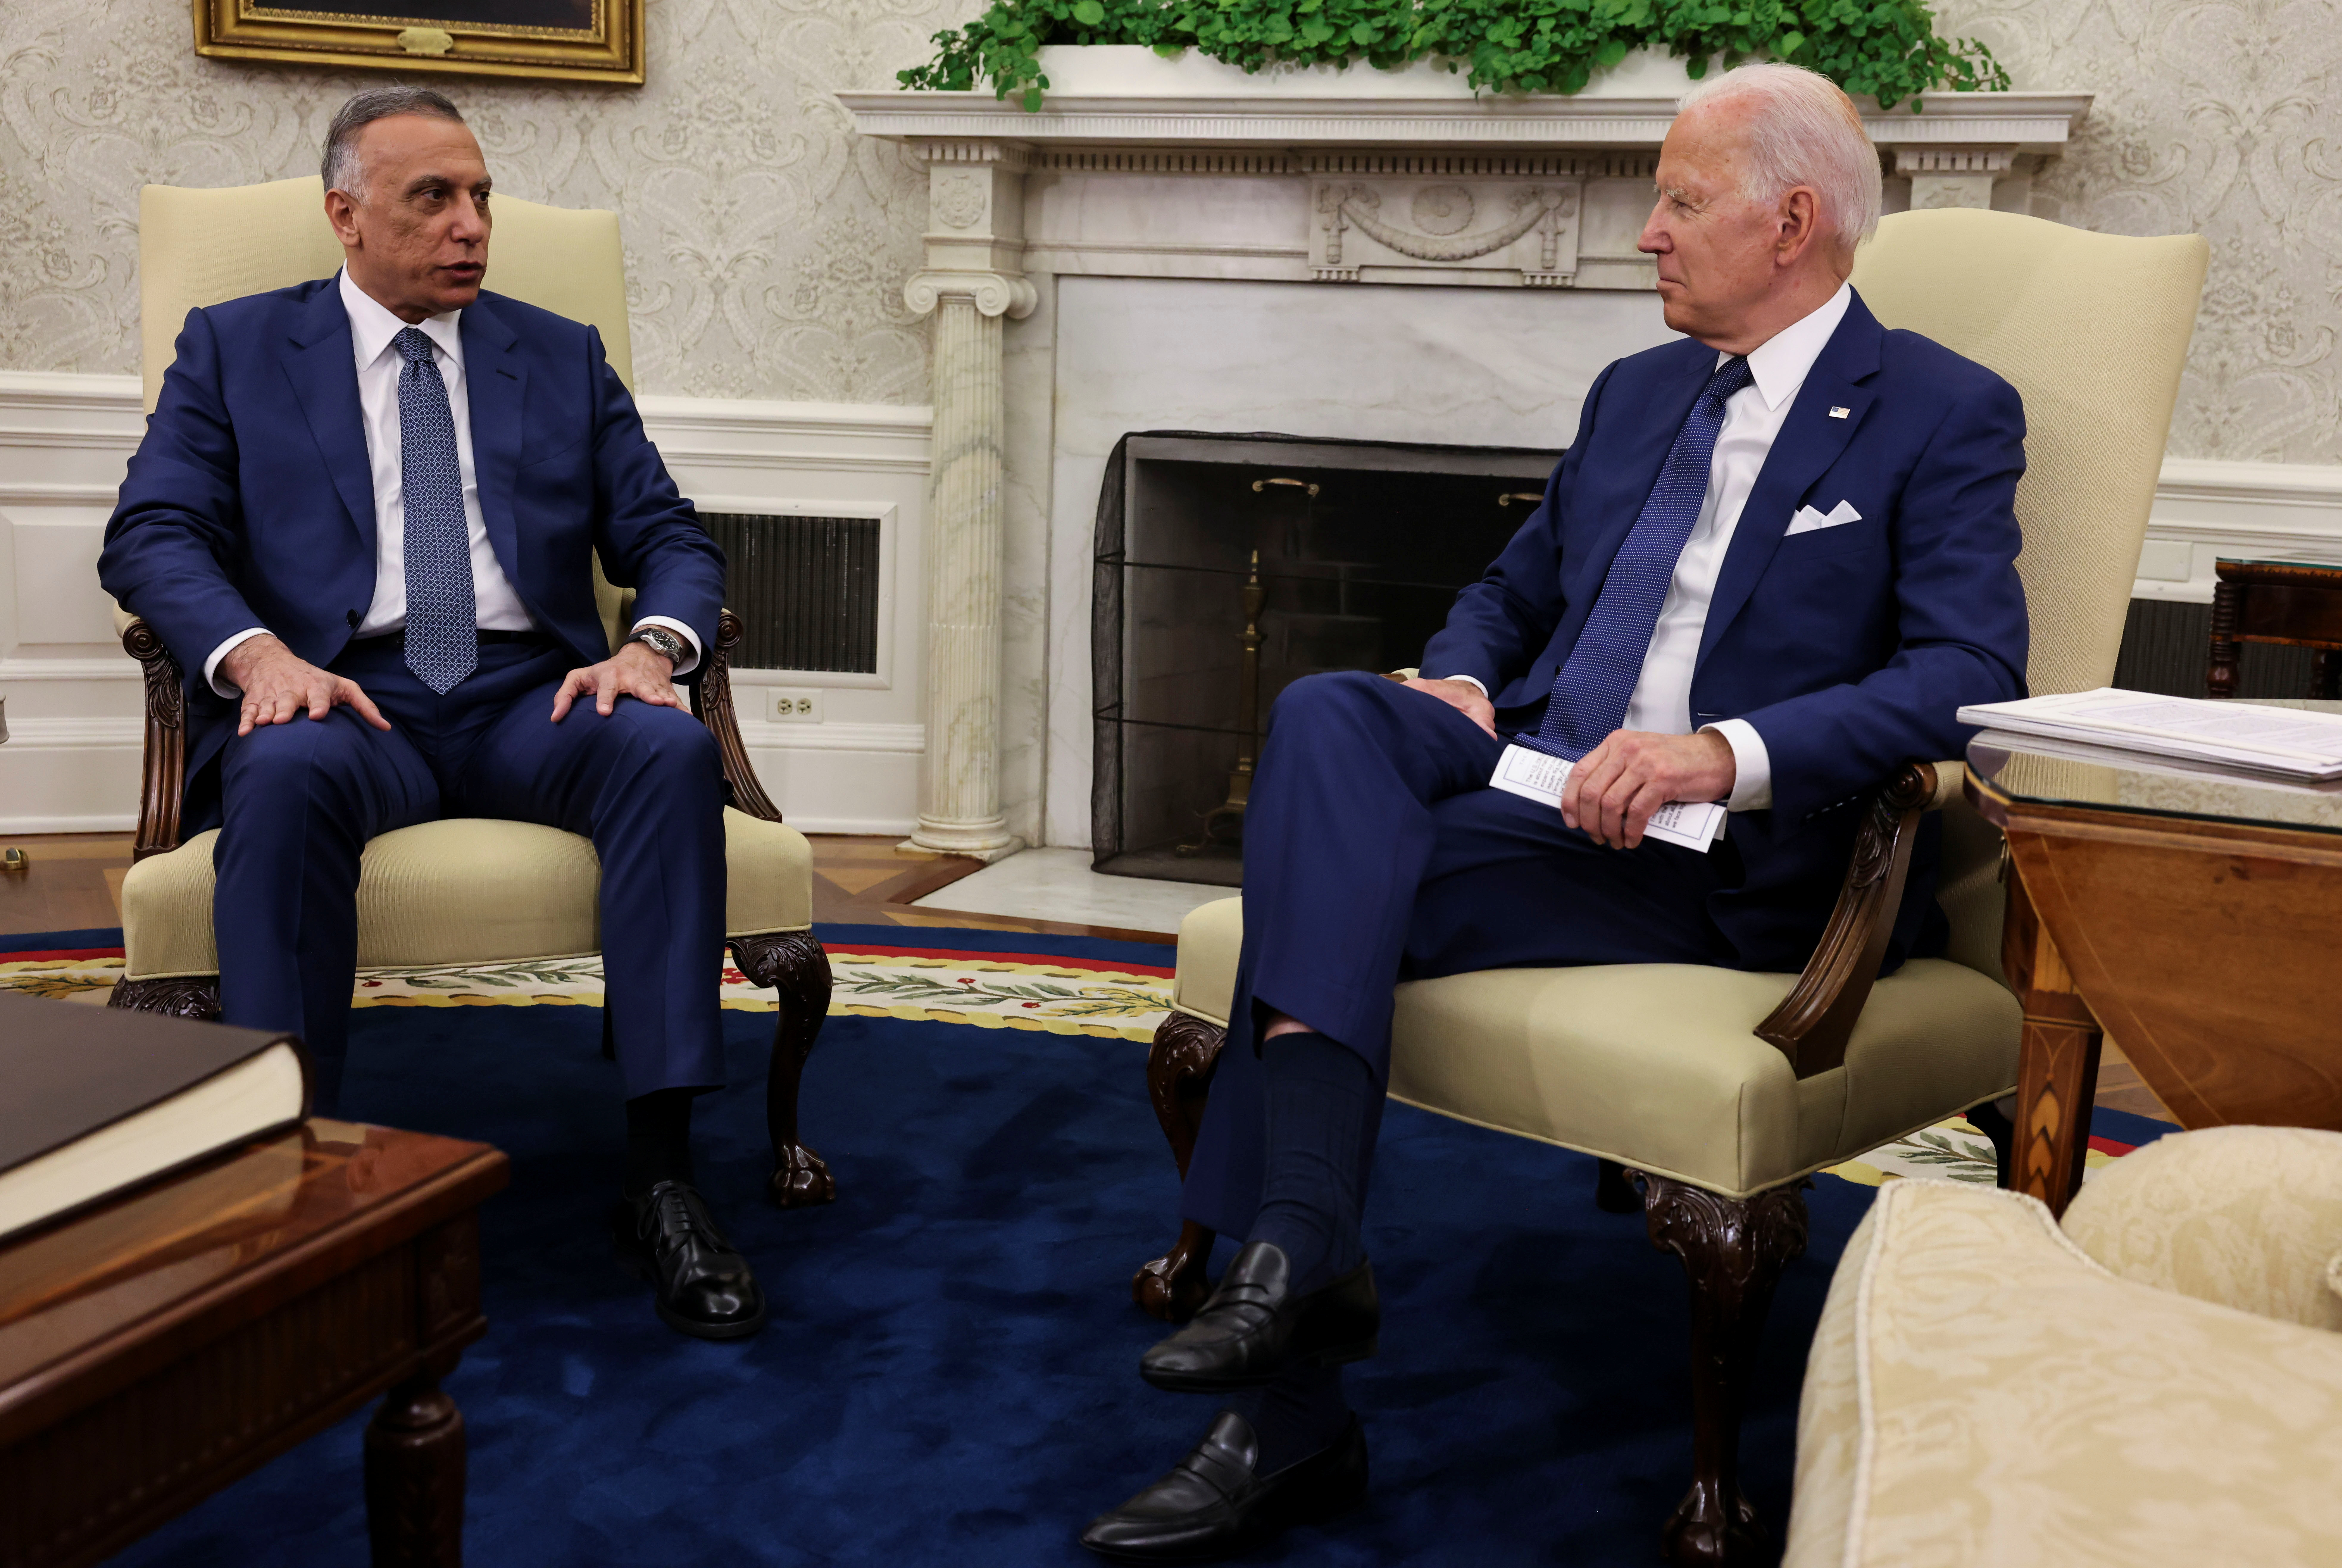 U.S. President Joe Biden listens to Iraq's Prime Minister Mustafa Al-Kadhimi during a bilateral meeting in the Oval Office at the White House in Washington, U.S., July 26, 2021. REUTERS/Evelyn Hockstein